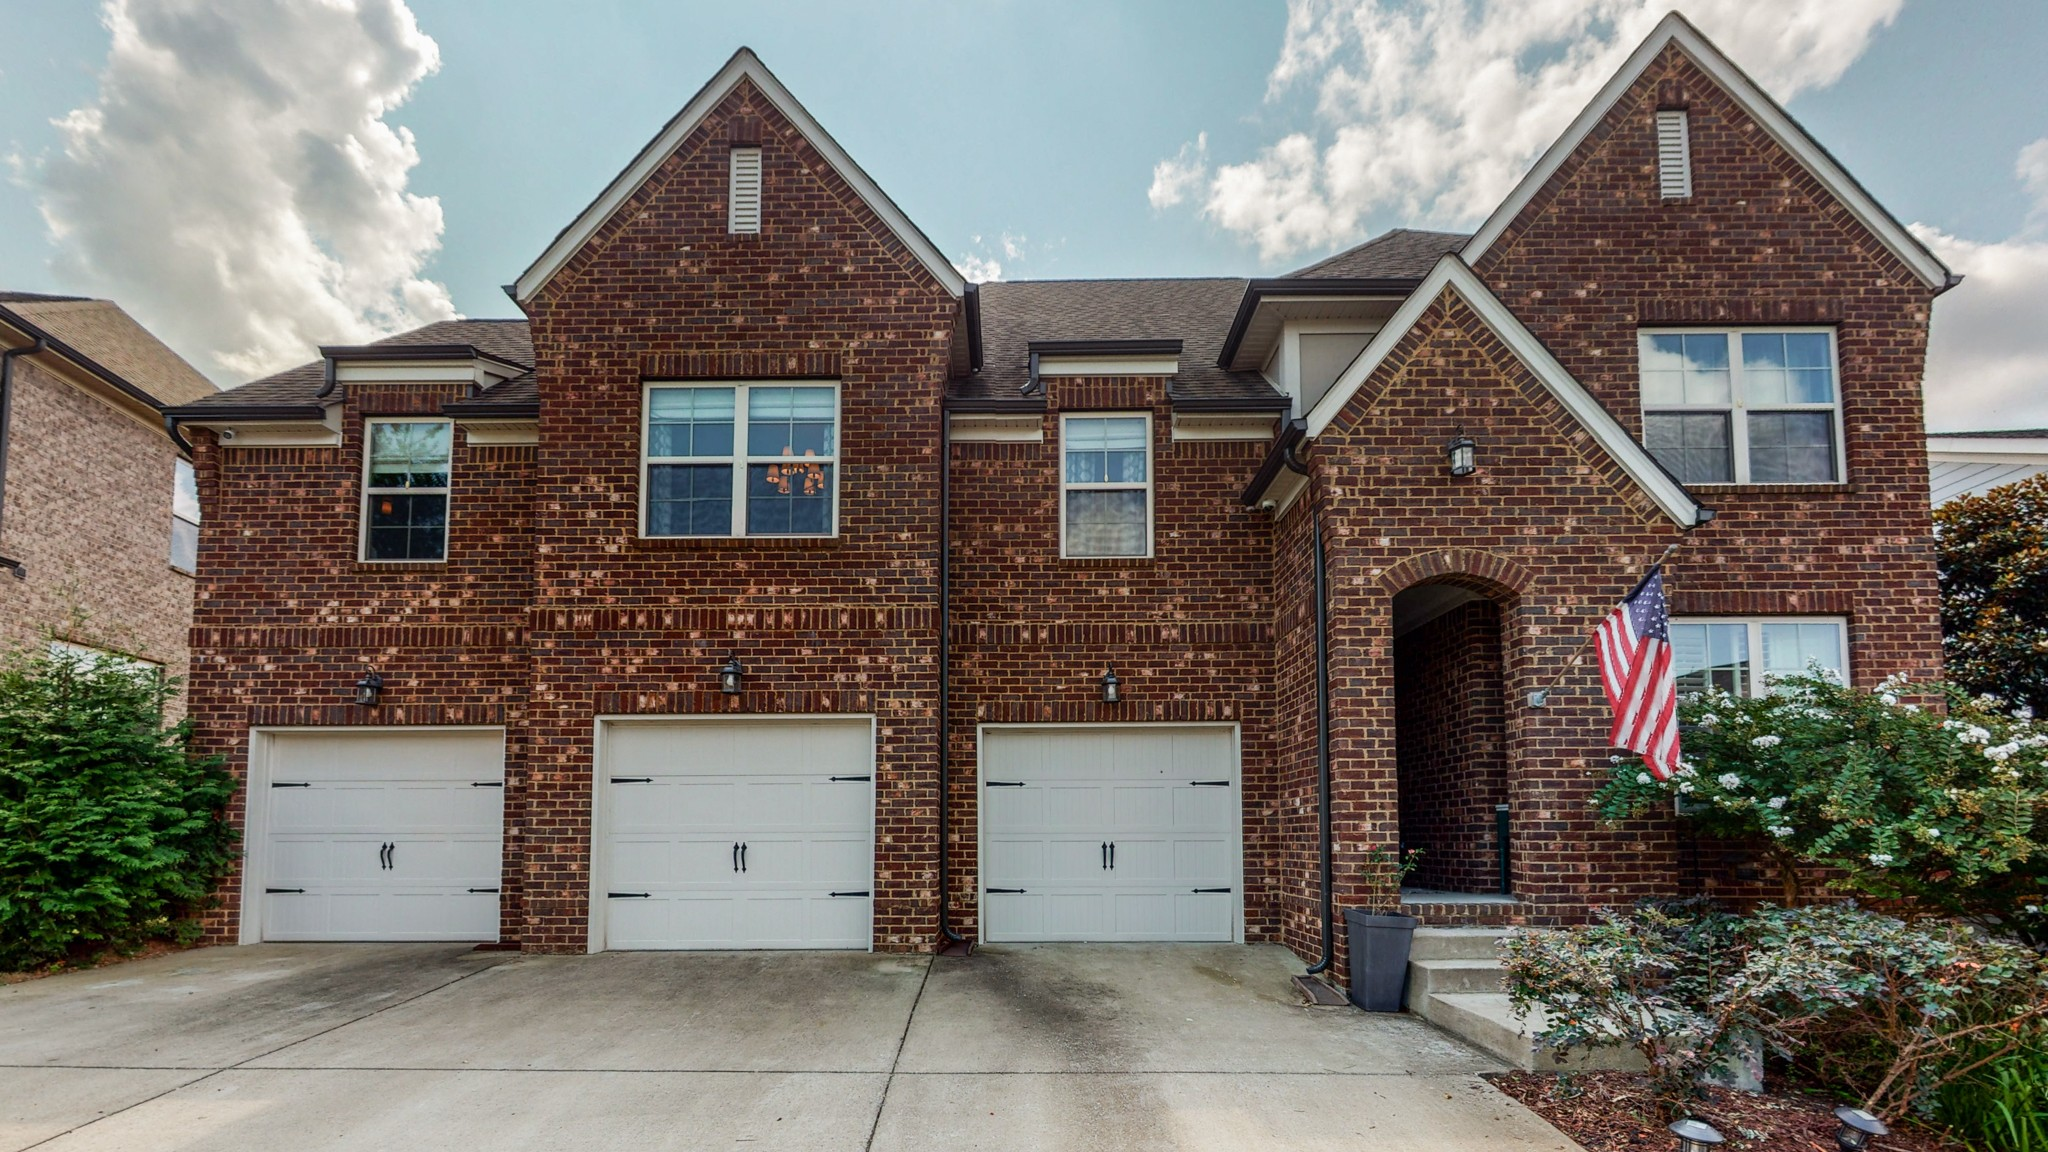 All brick, well appointed home has so many wonderful features and spaces. Each bedroom features bathroom access, primary-1st floor. Bonus room & attached media room,seating and media equipment convey! Hardwoods in main living areas. Dining room being used as office-doors give privacy. Chefs kitchen with double ovens, gas cooktop, pantry and extra storage closet right off kitchen. Huge island-granite. Wonderful covered patio with gas fireplace plus patio with pergola.Fenced back yard with garden.